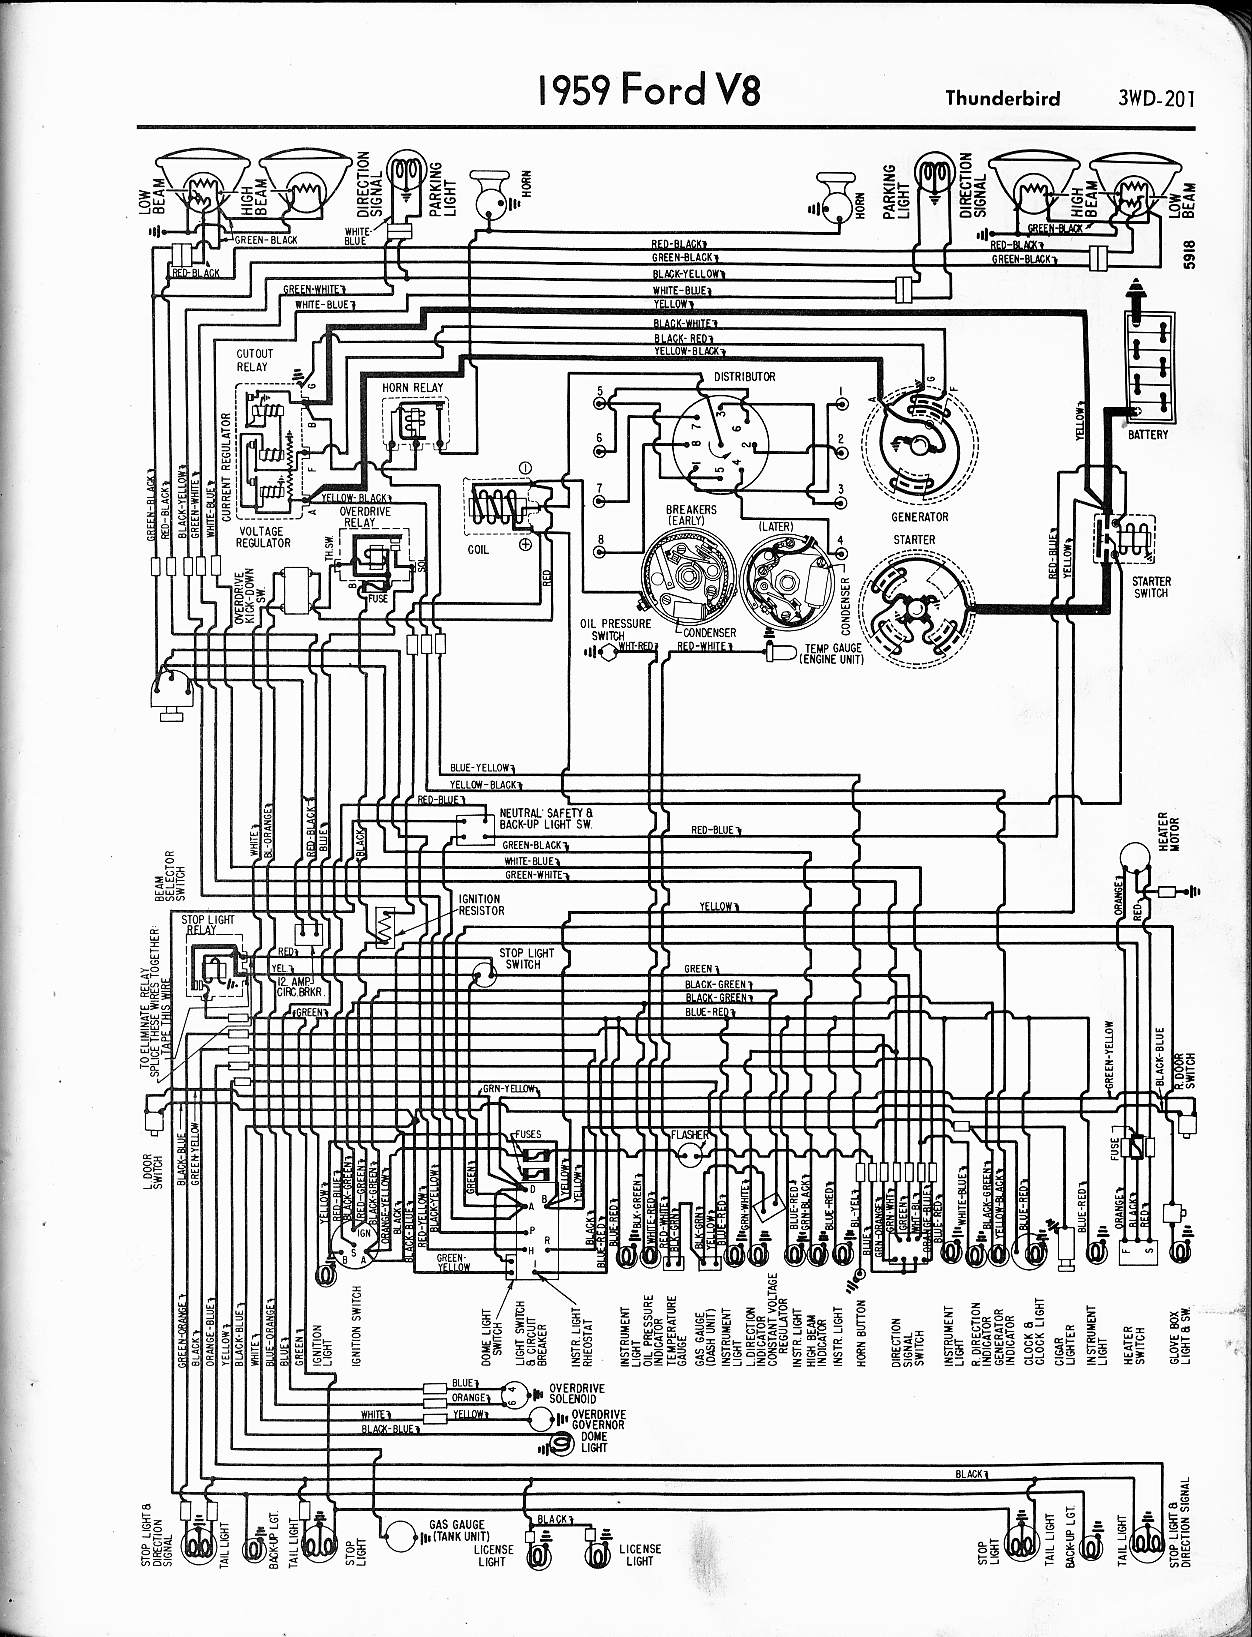 1957 Ford Wiring Diagram Wiring Diagram Schemes 1957 Ford Ranchero Wiring  Diagram 1957 Ford Truck Motor Wiring